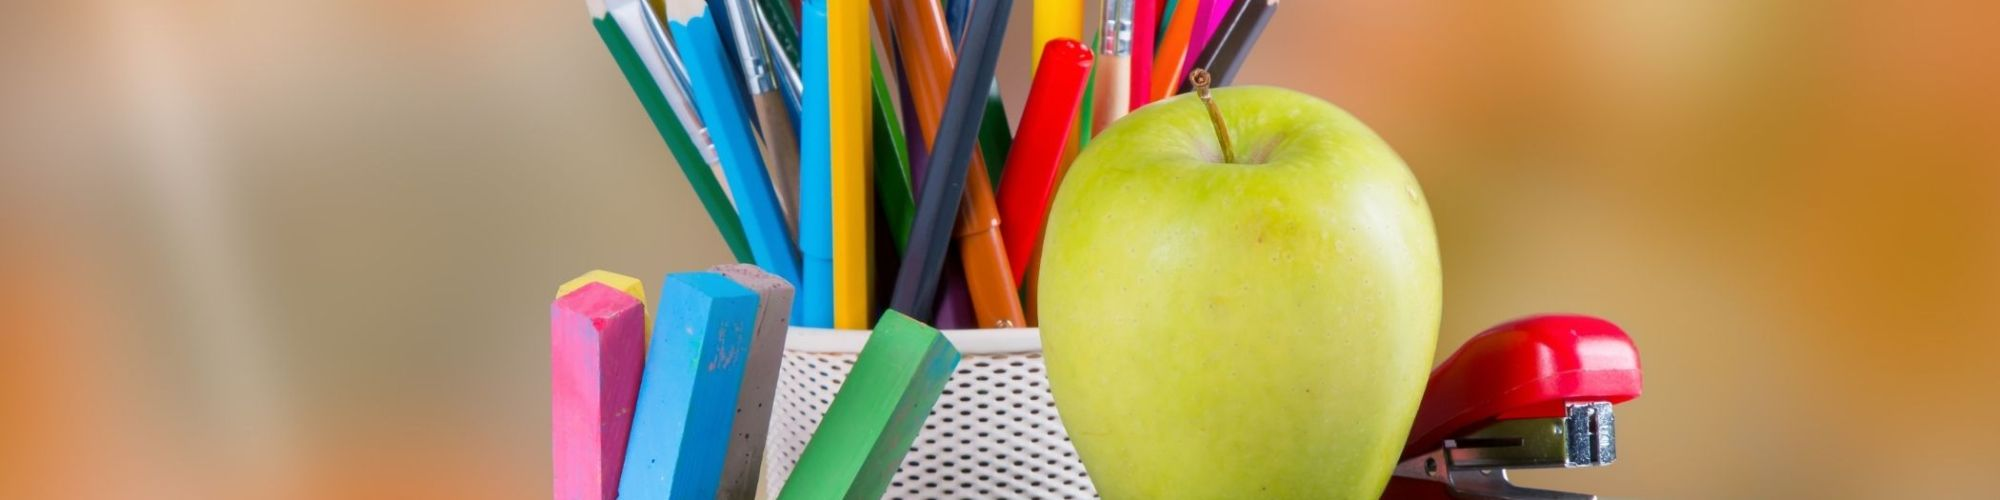 Picture of School Supplies and Apple